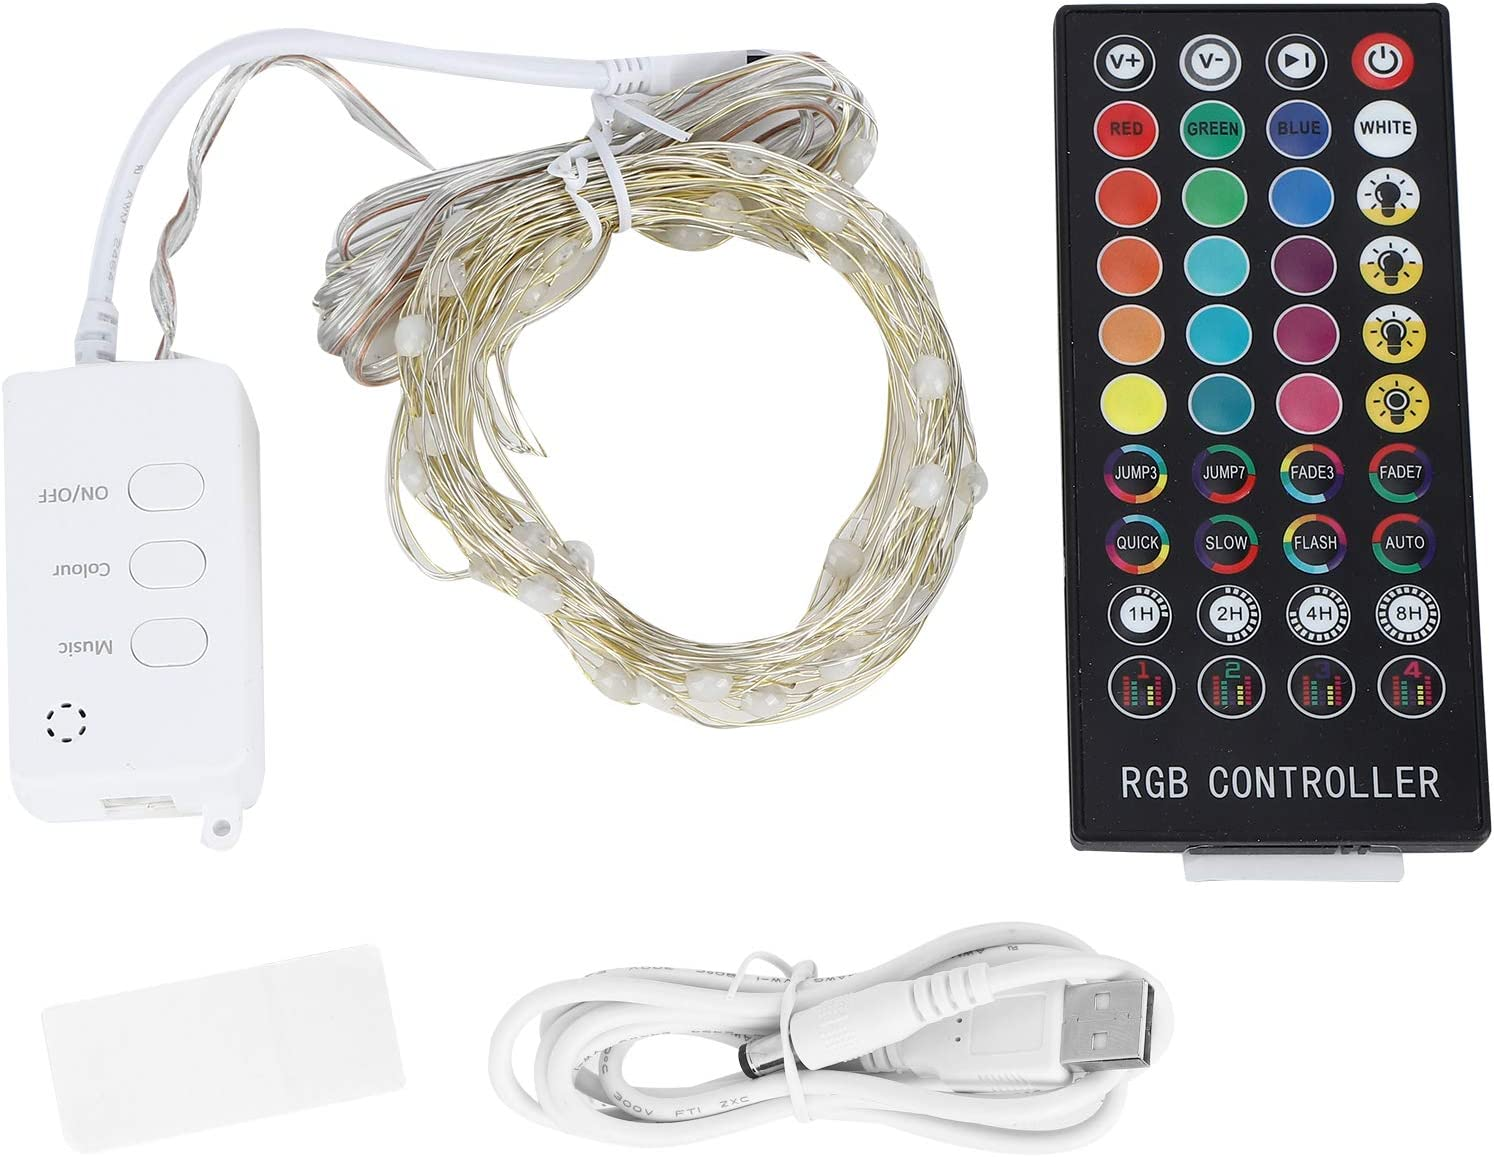 Alvinlite Led Lights Mail order Strip Bluetooth Rem String with WiFi New product! New type